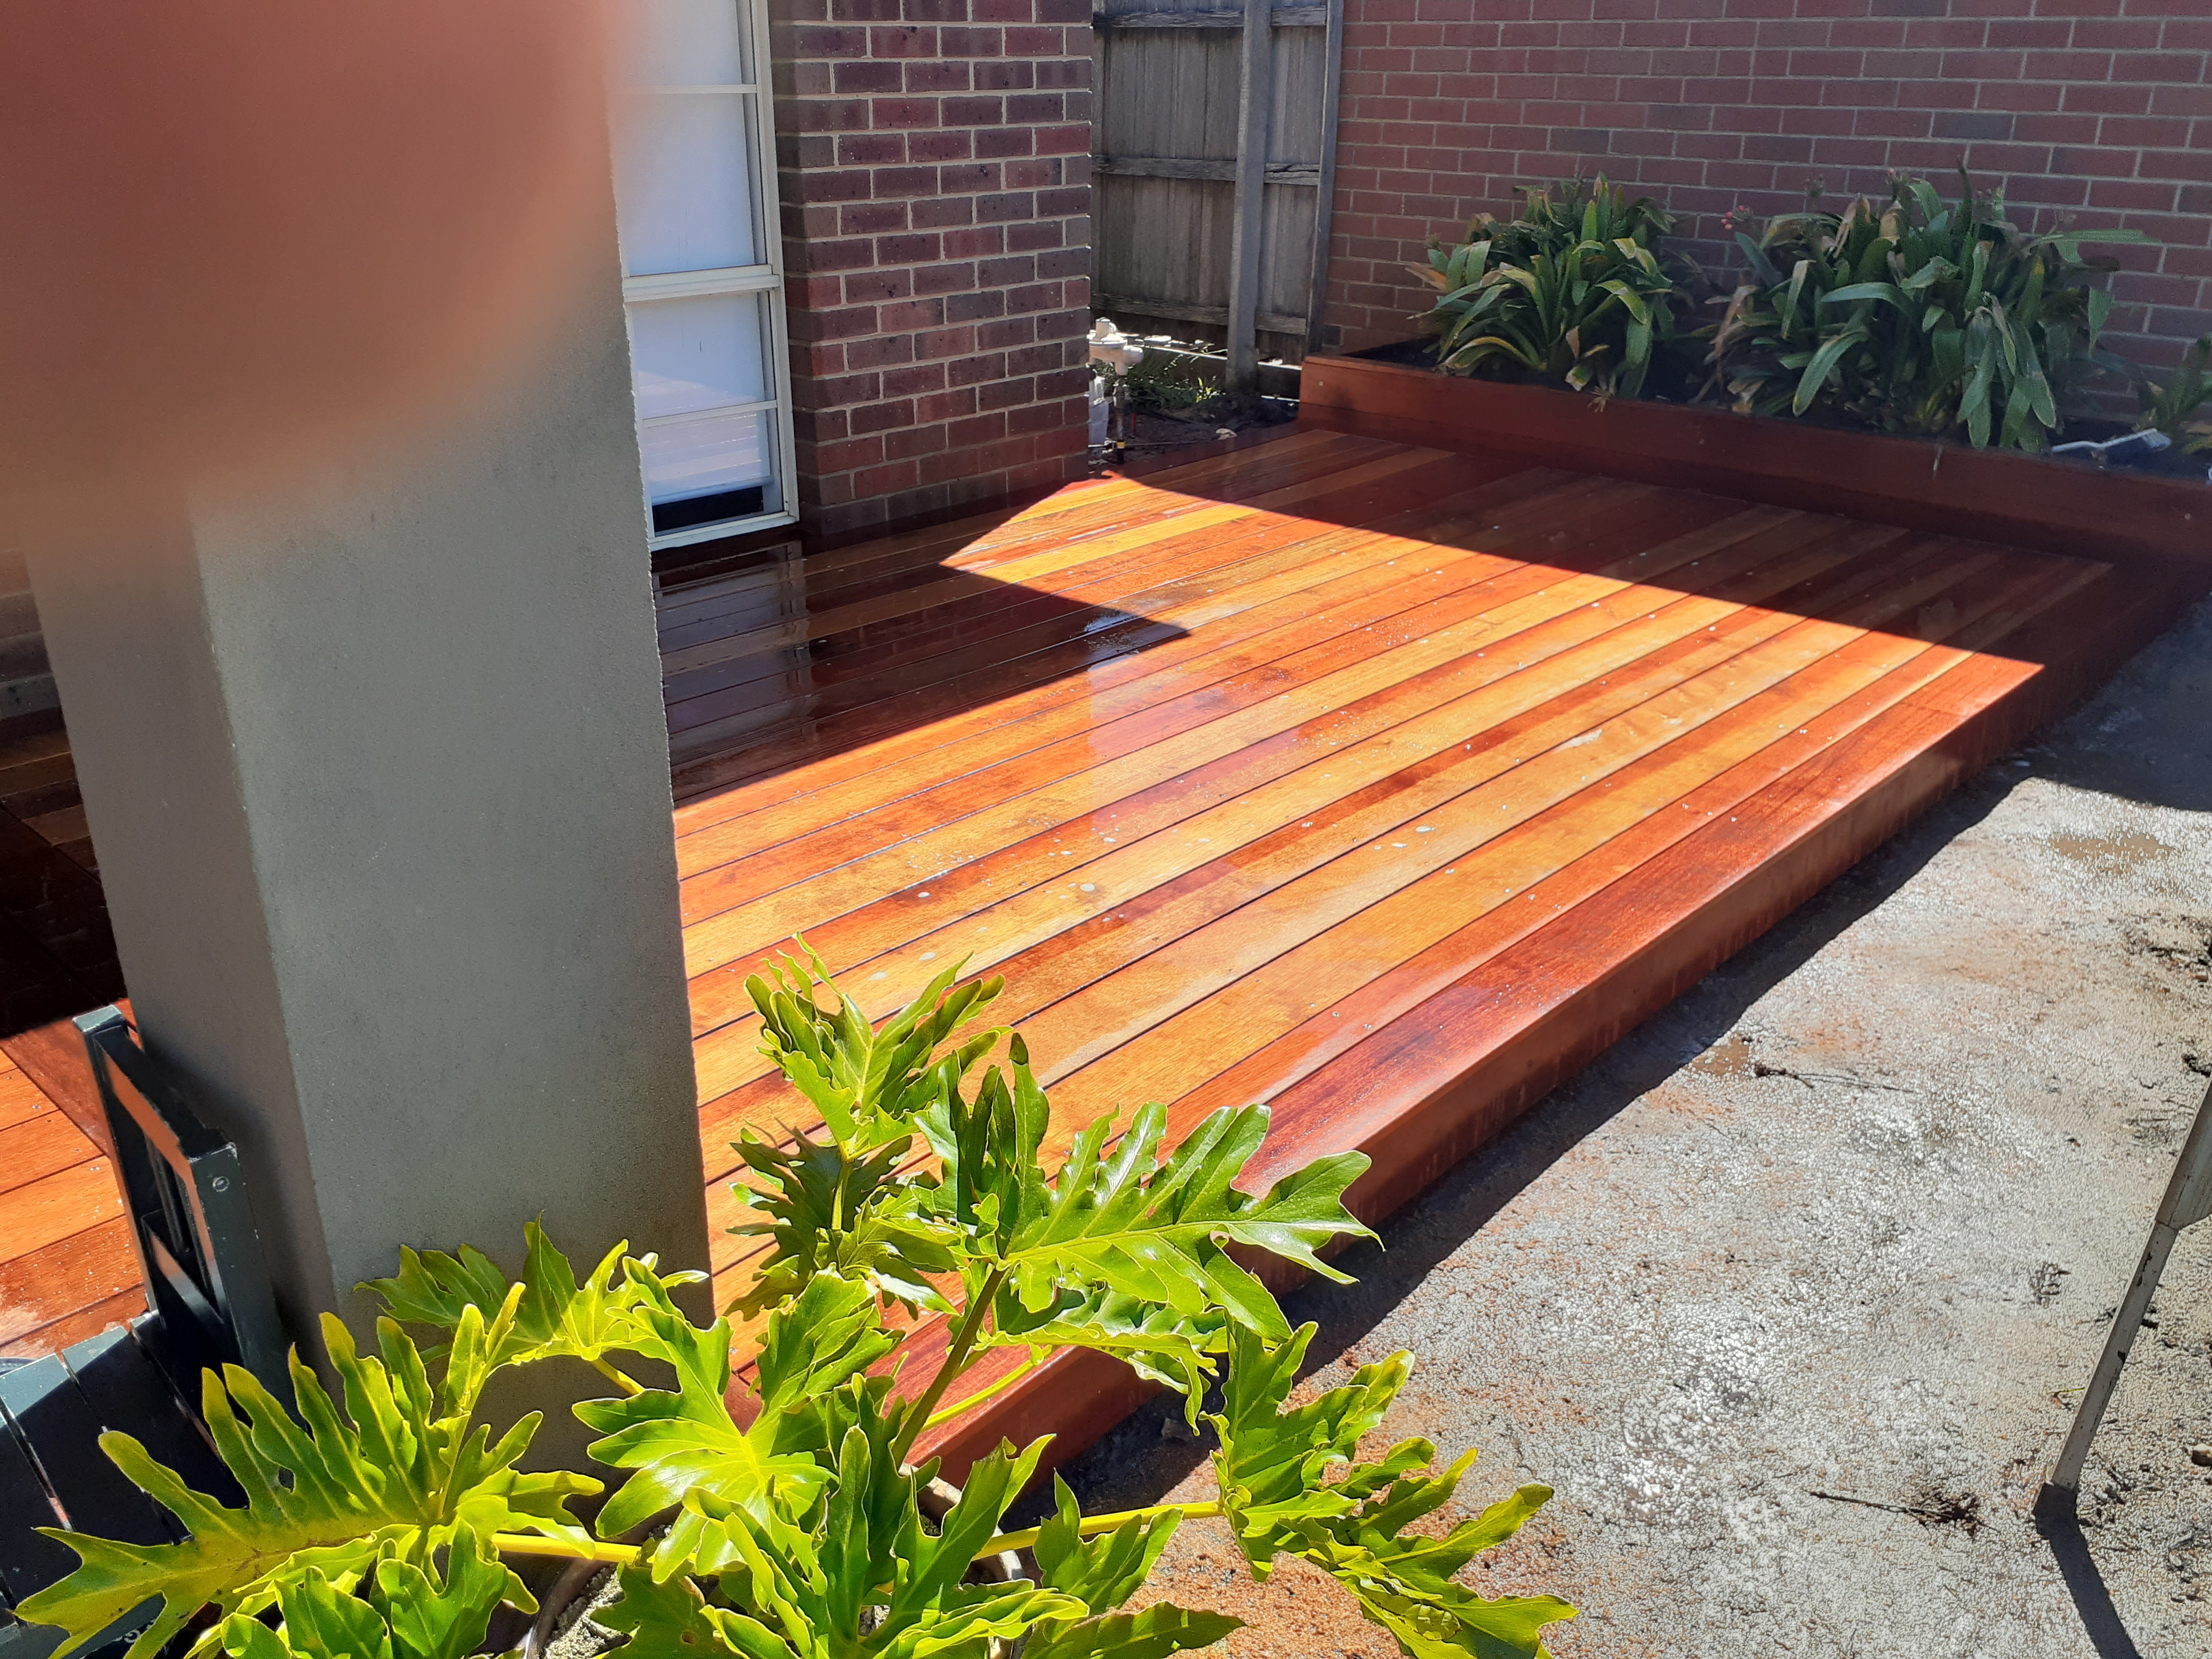 A simple deck area for the front door.